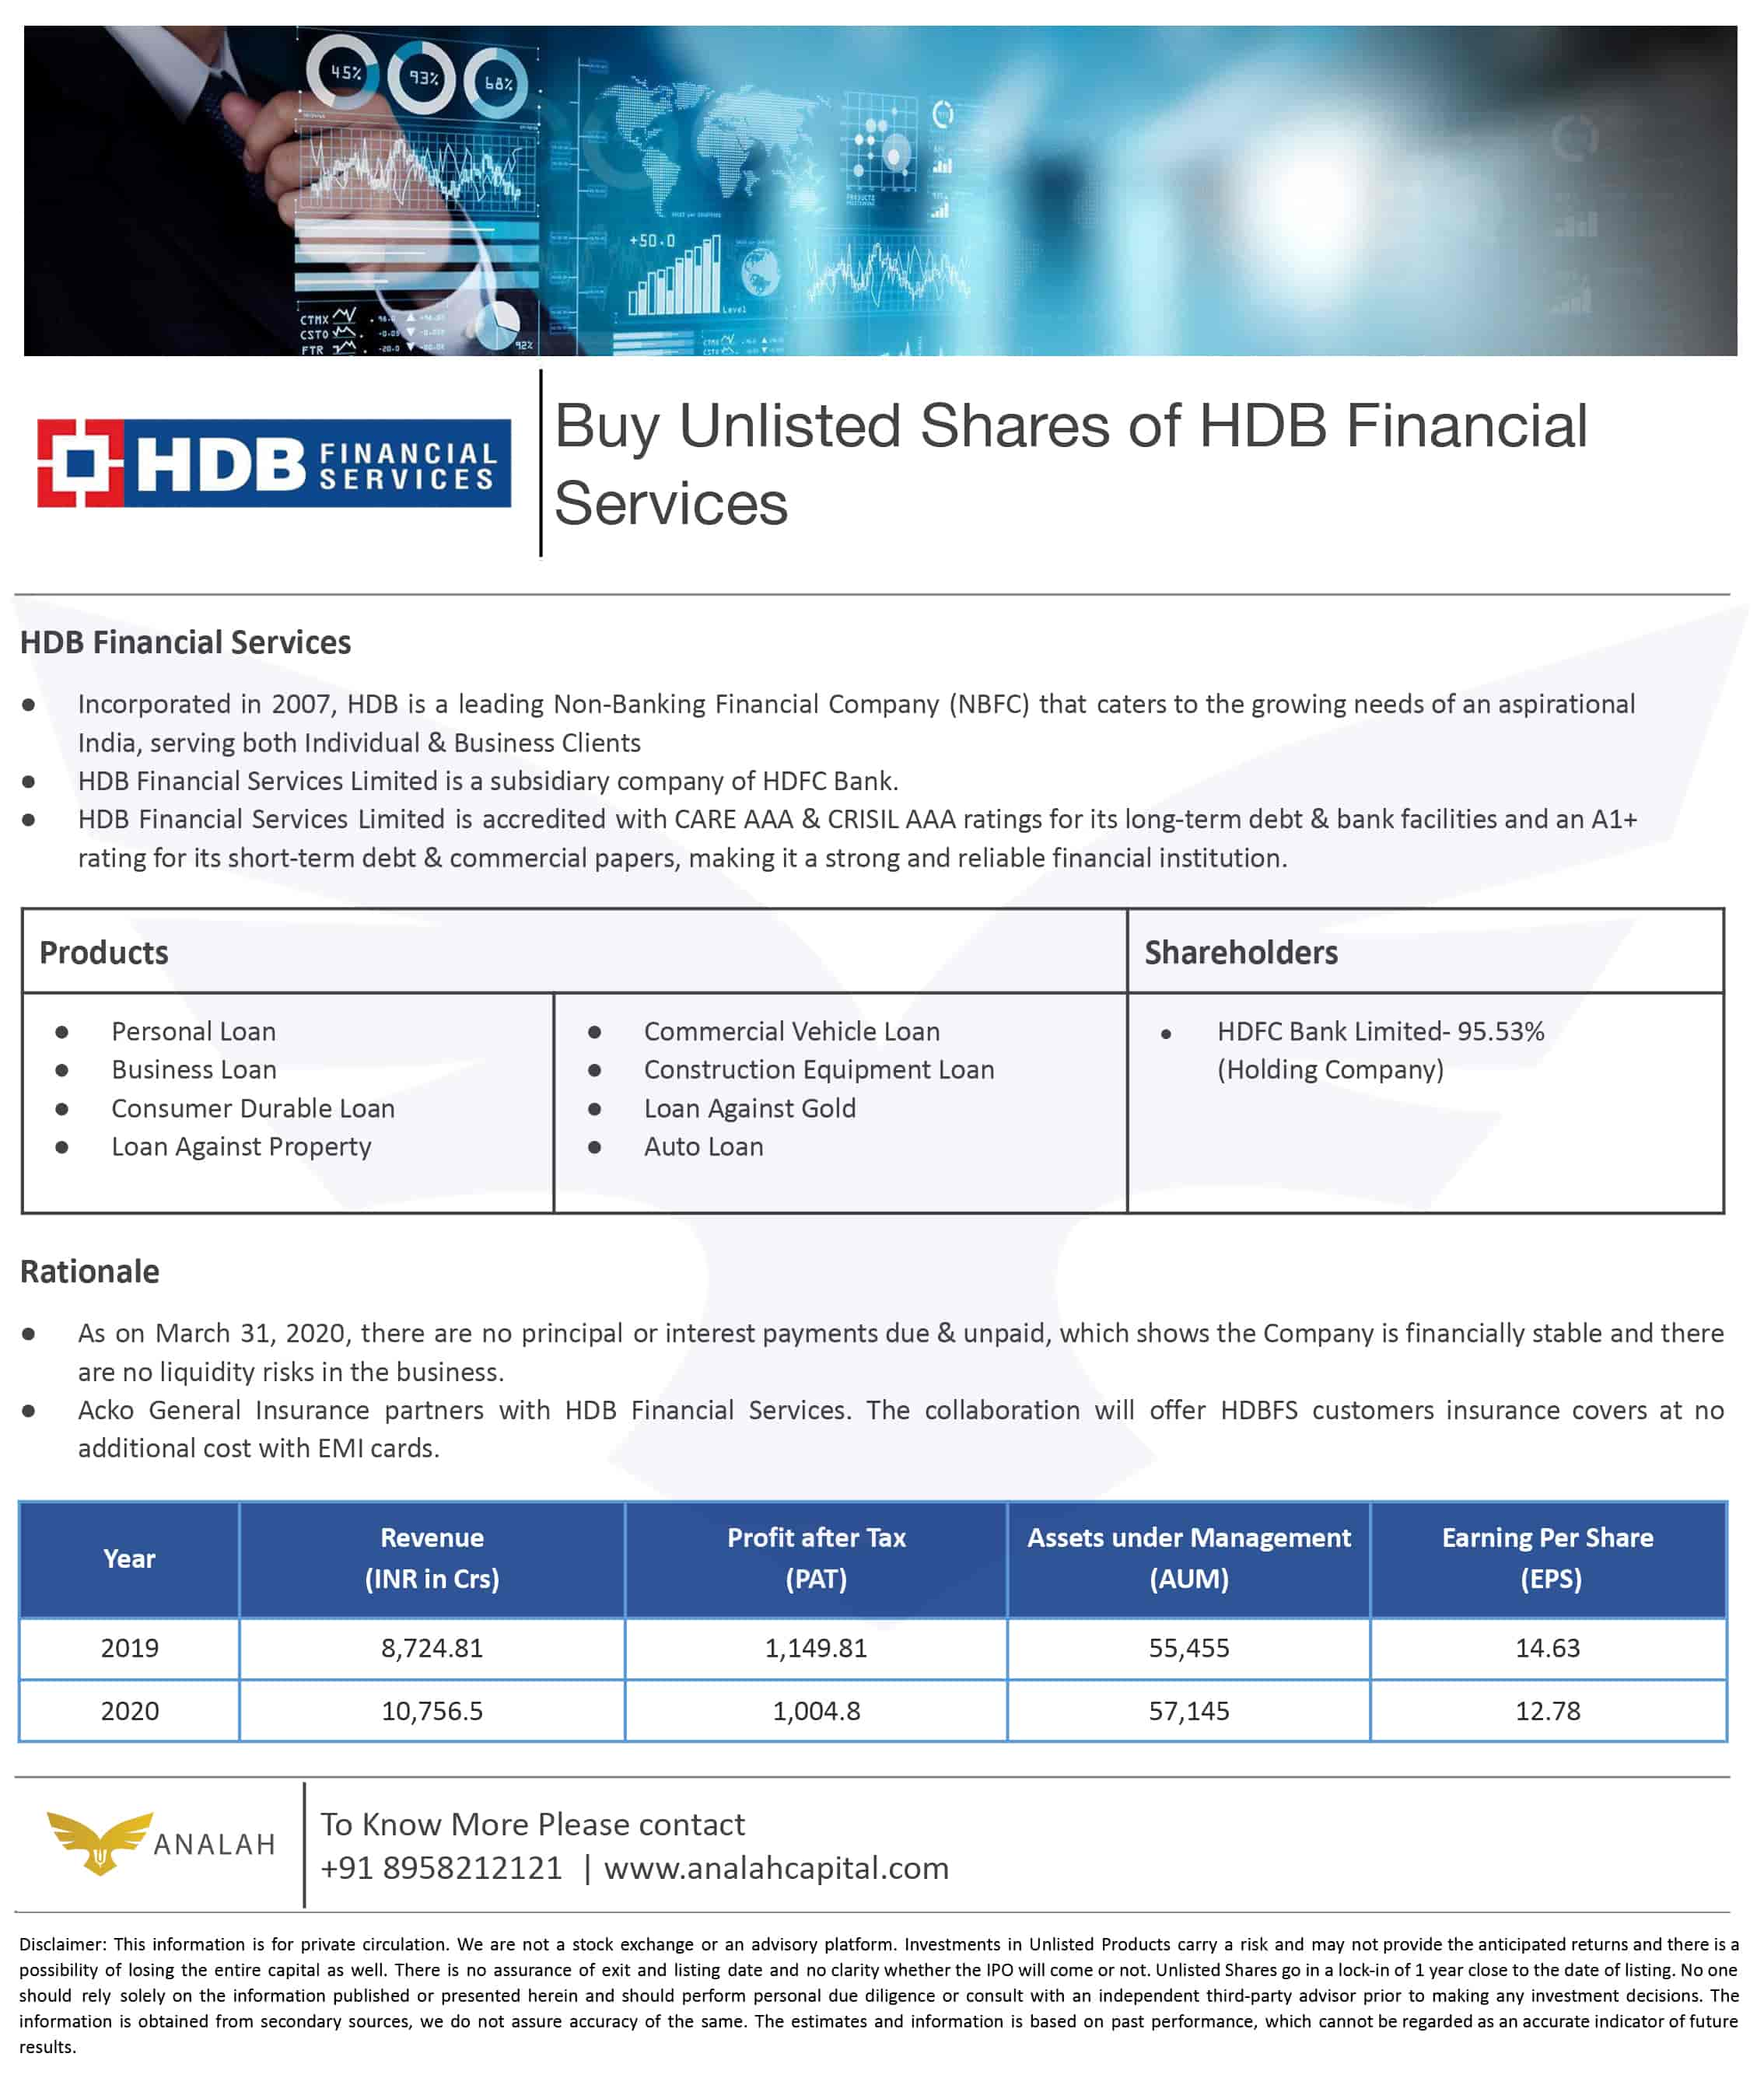 HDB Financial Services Unlisted Shares